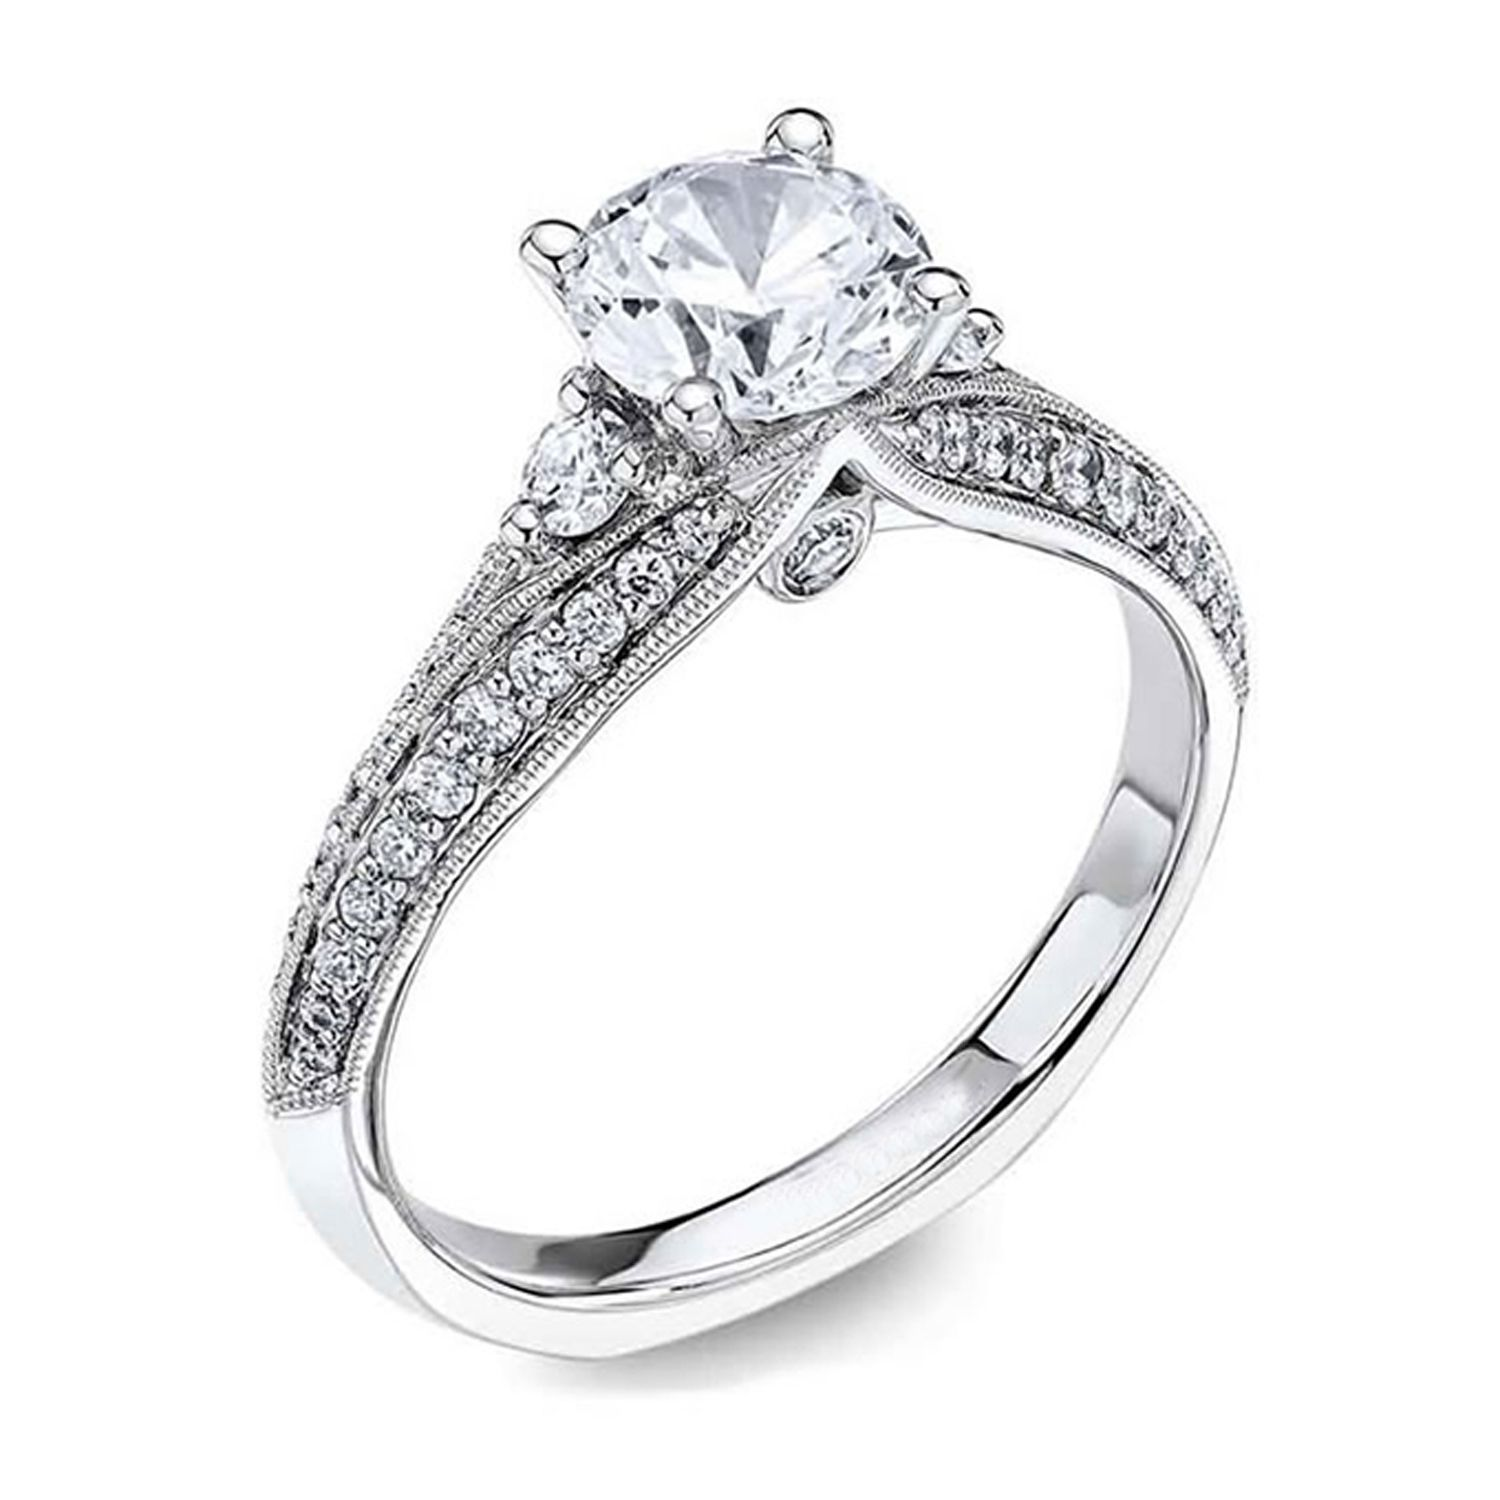 2 00 Simulated Diamond 10k White Gold Vintage Engagement Ring